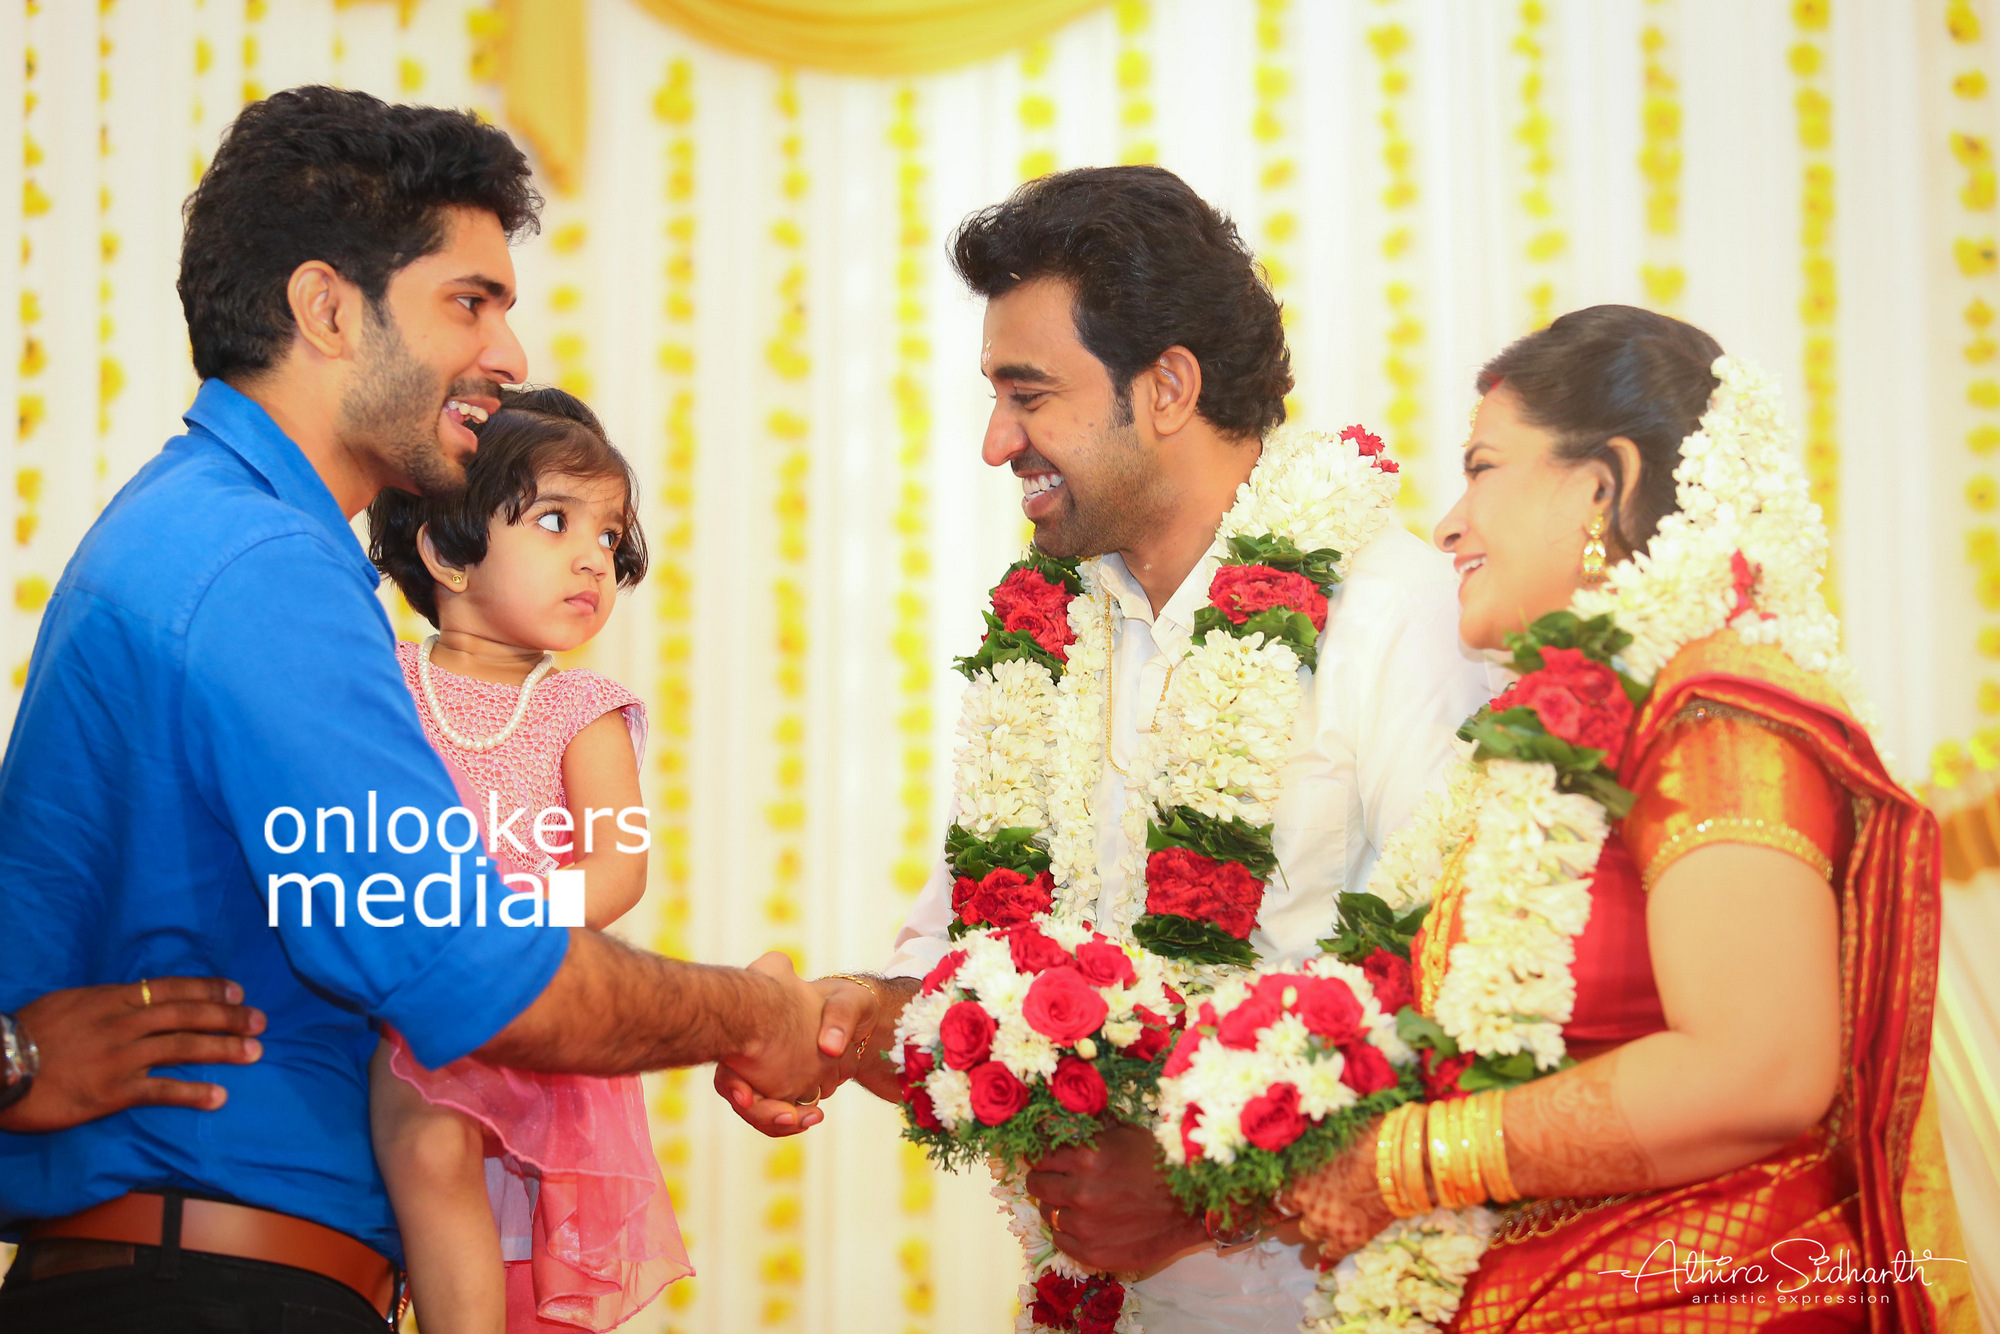 http://onlookersmedia.in/wp-content/uploads/2017/05/Malayalam-Actor-Siju-Wilson-Wedding-Stills-Photos-20.jpg